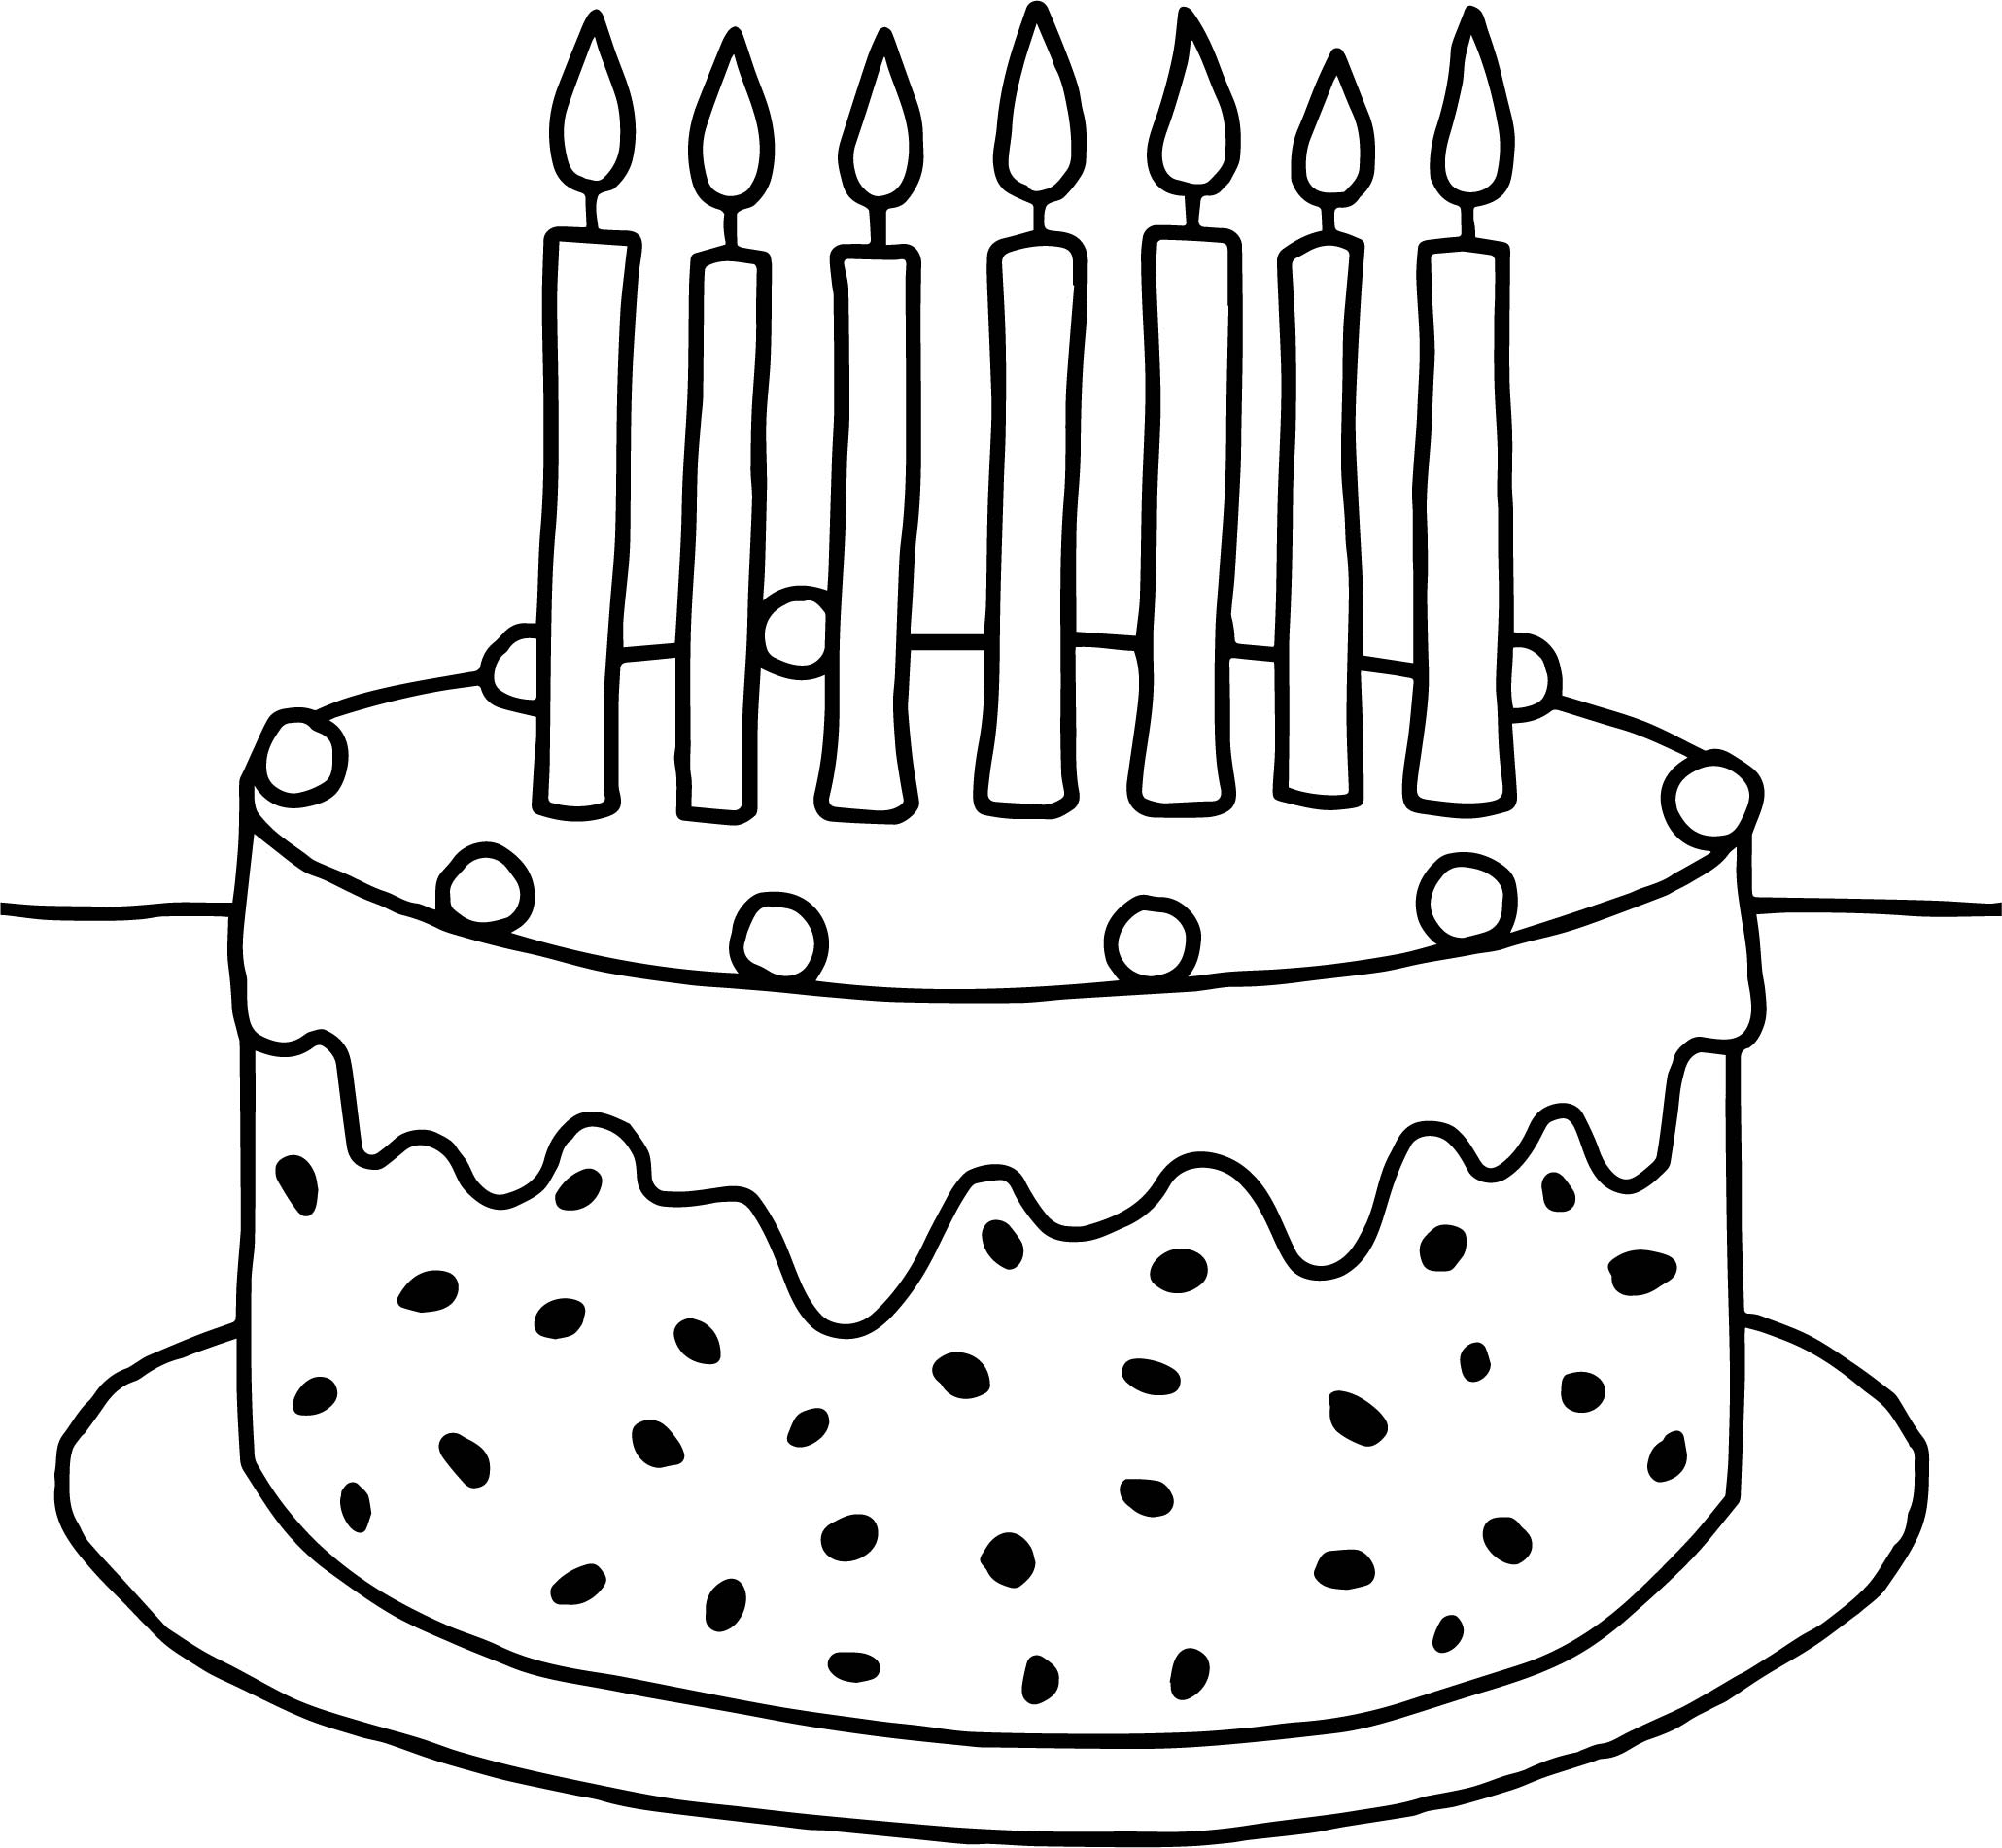 Preschool birthday cake coloring pages for Coloring page for preschool